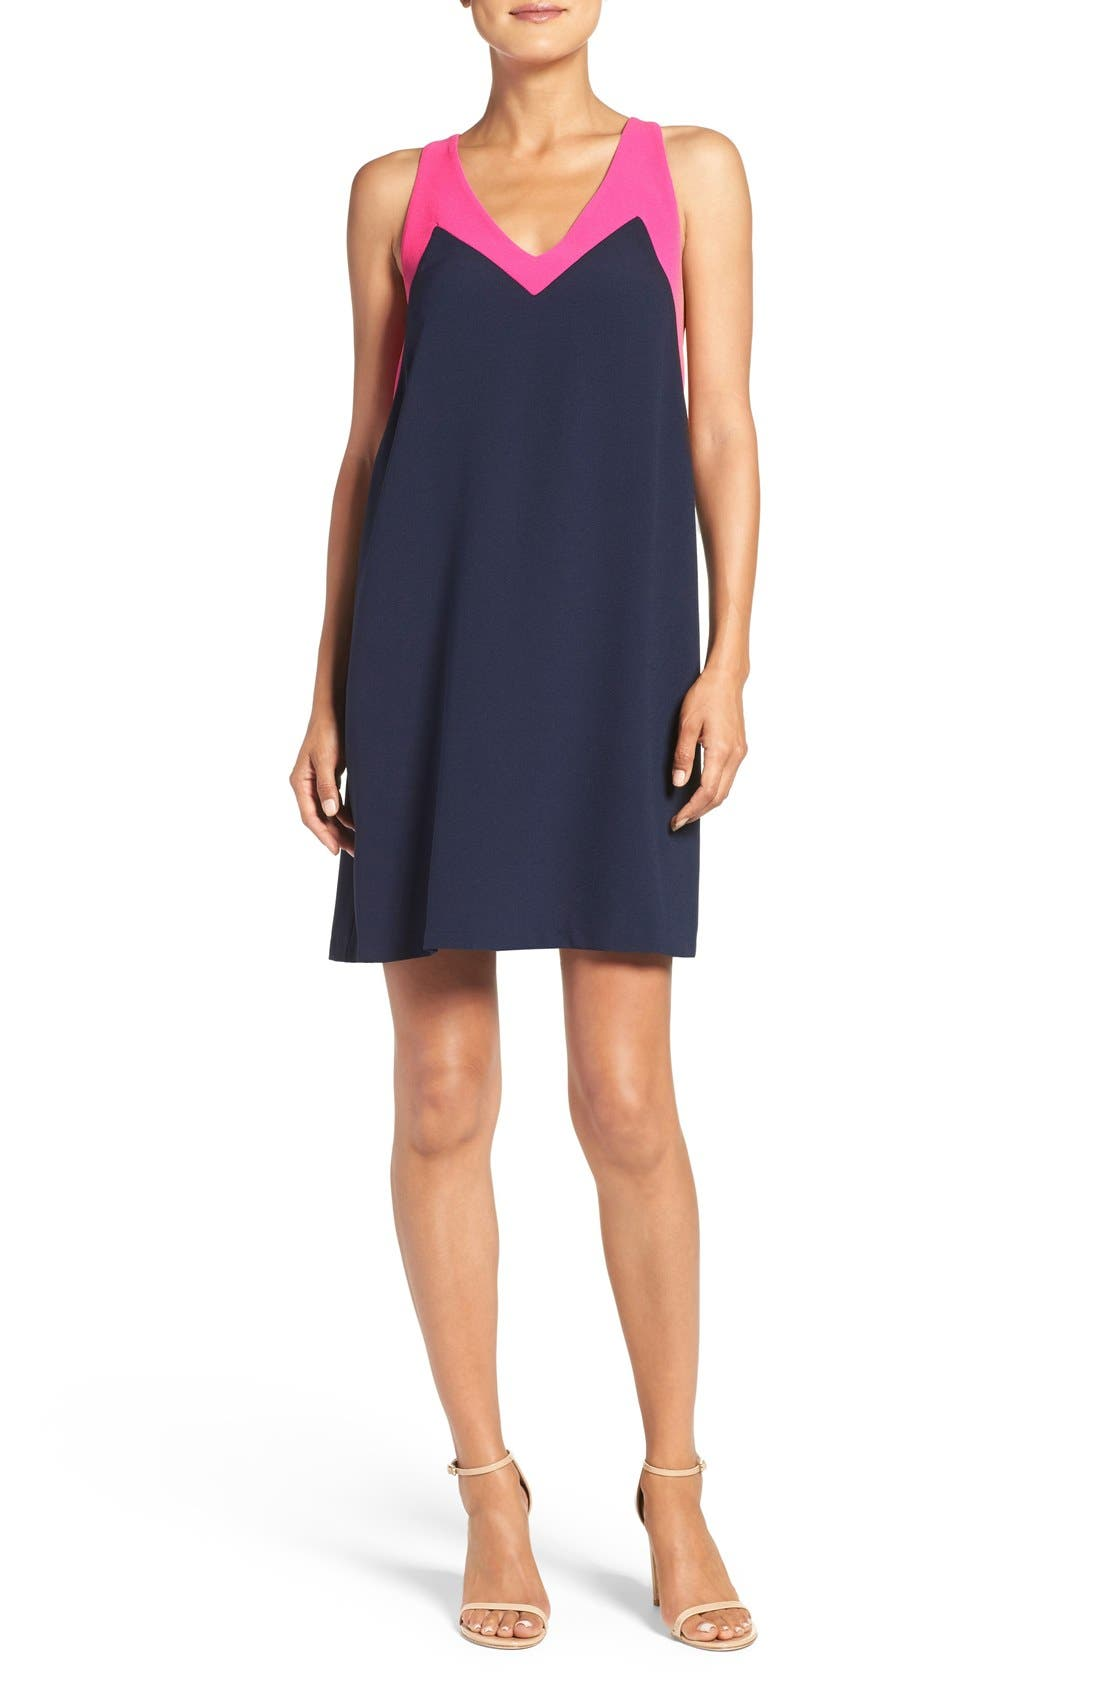 Katy Colorblock Shift Dress,                             Main thumbnail 1, color,                             Navy/ Pink